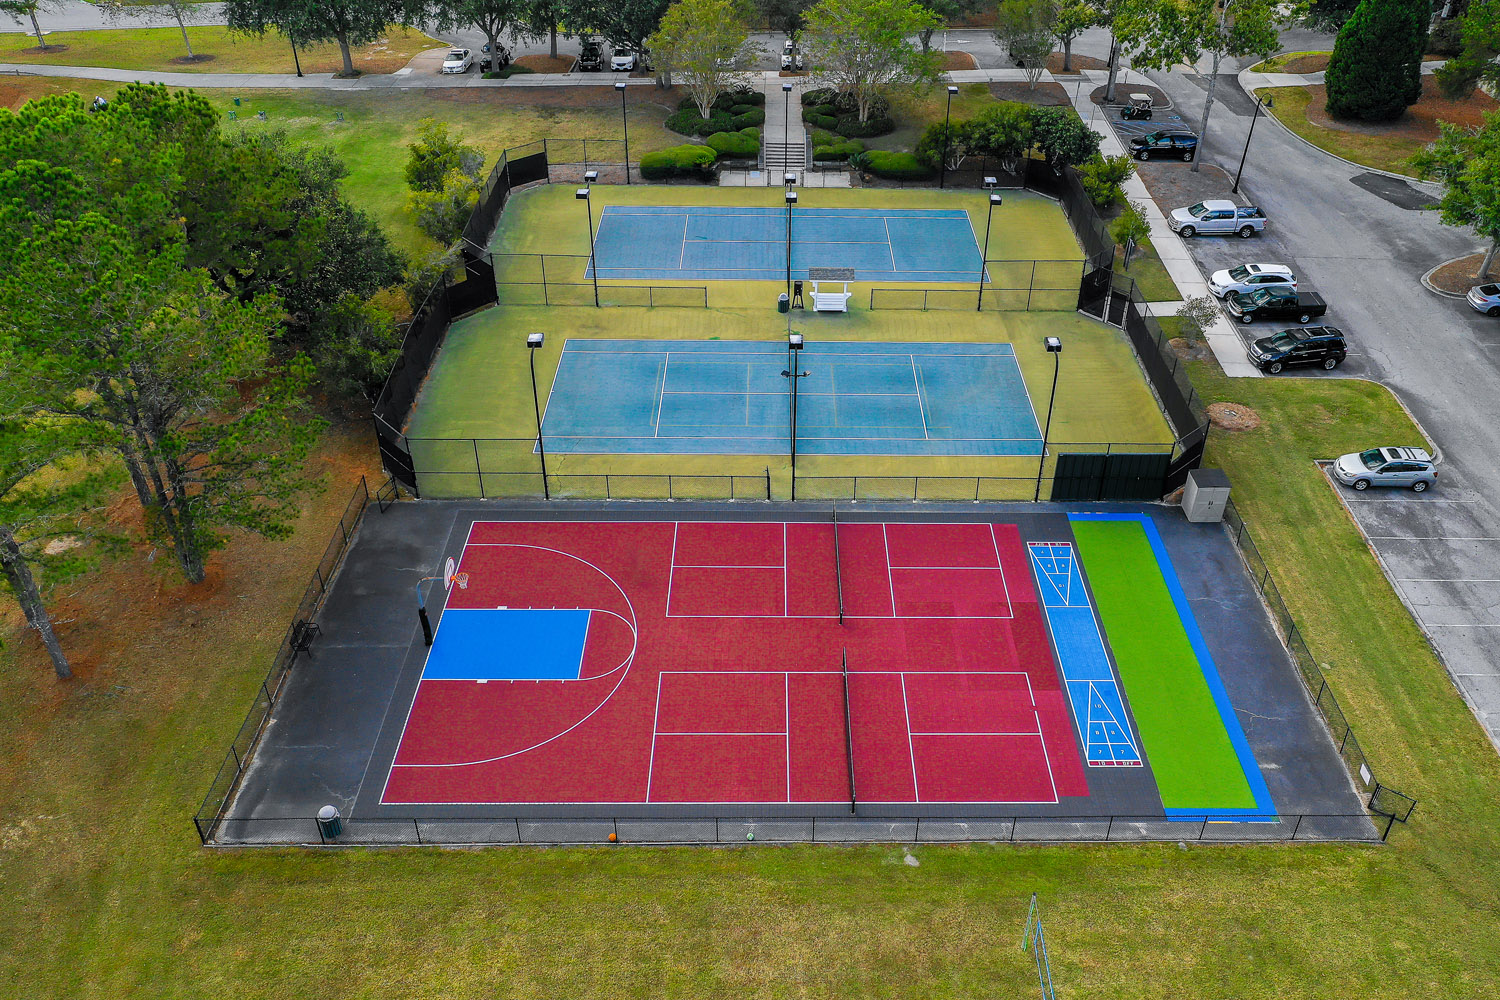 Tennis Courts at Coosaw Creek